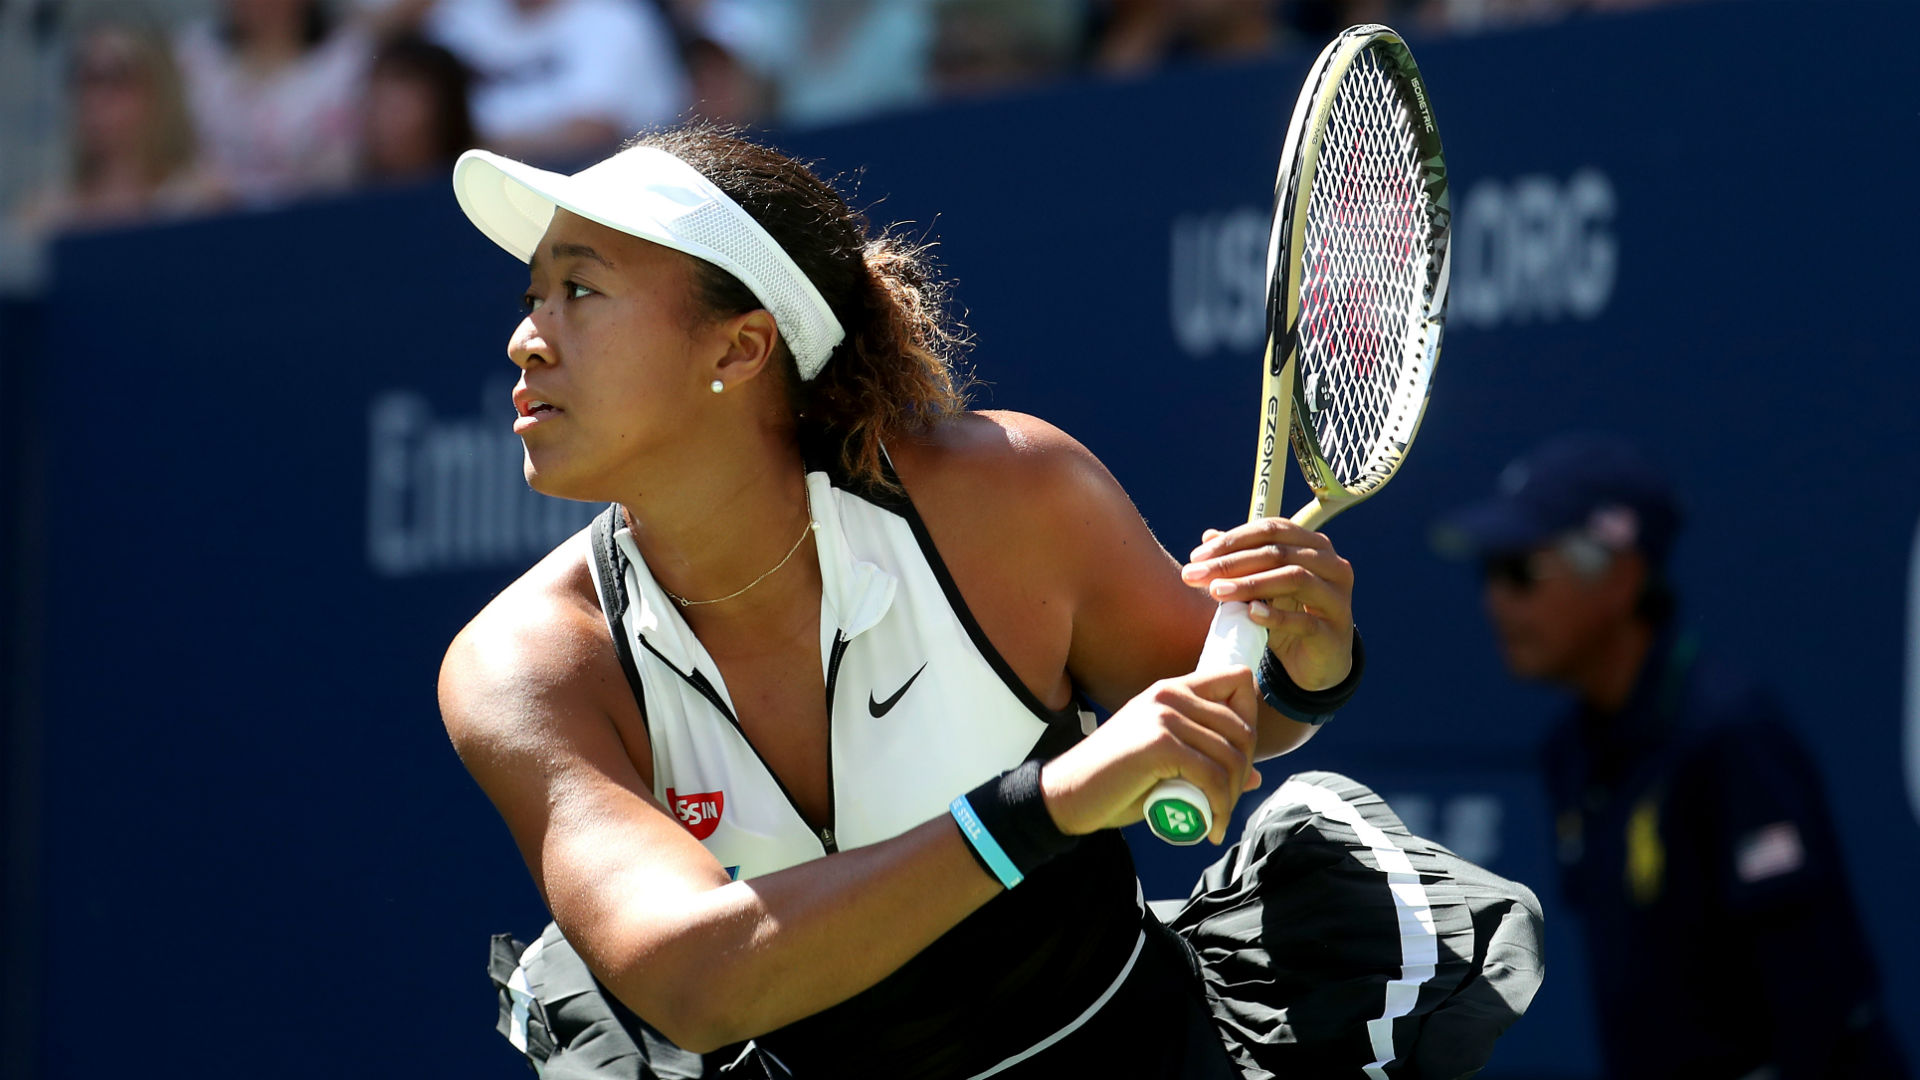 US Open 2019: Osaka overcomes in-form Linette in round two